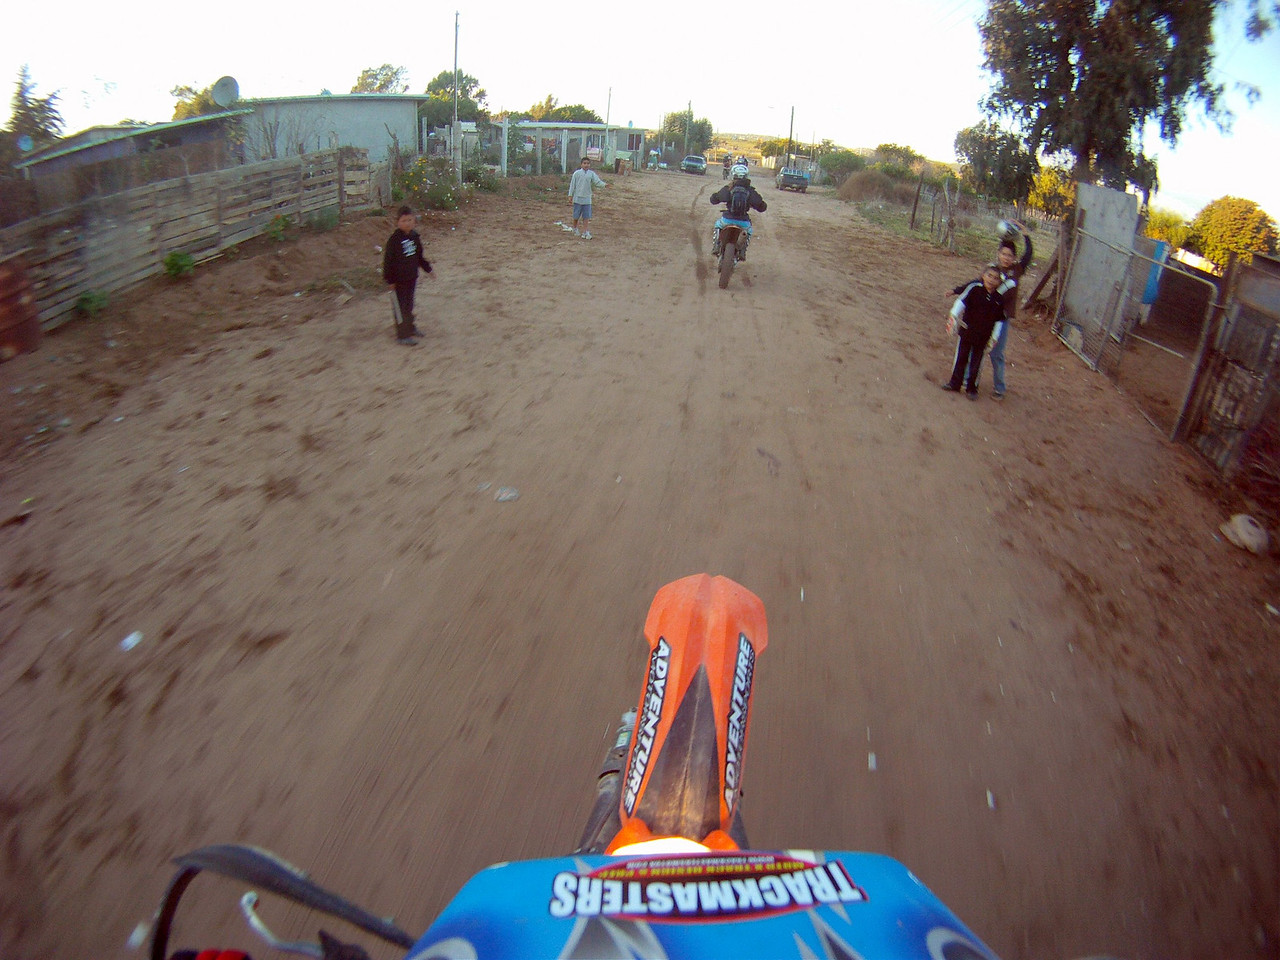 riding out to the baja course and doing some wheelies for the kids